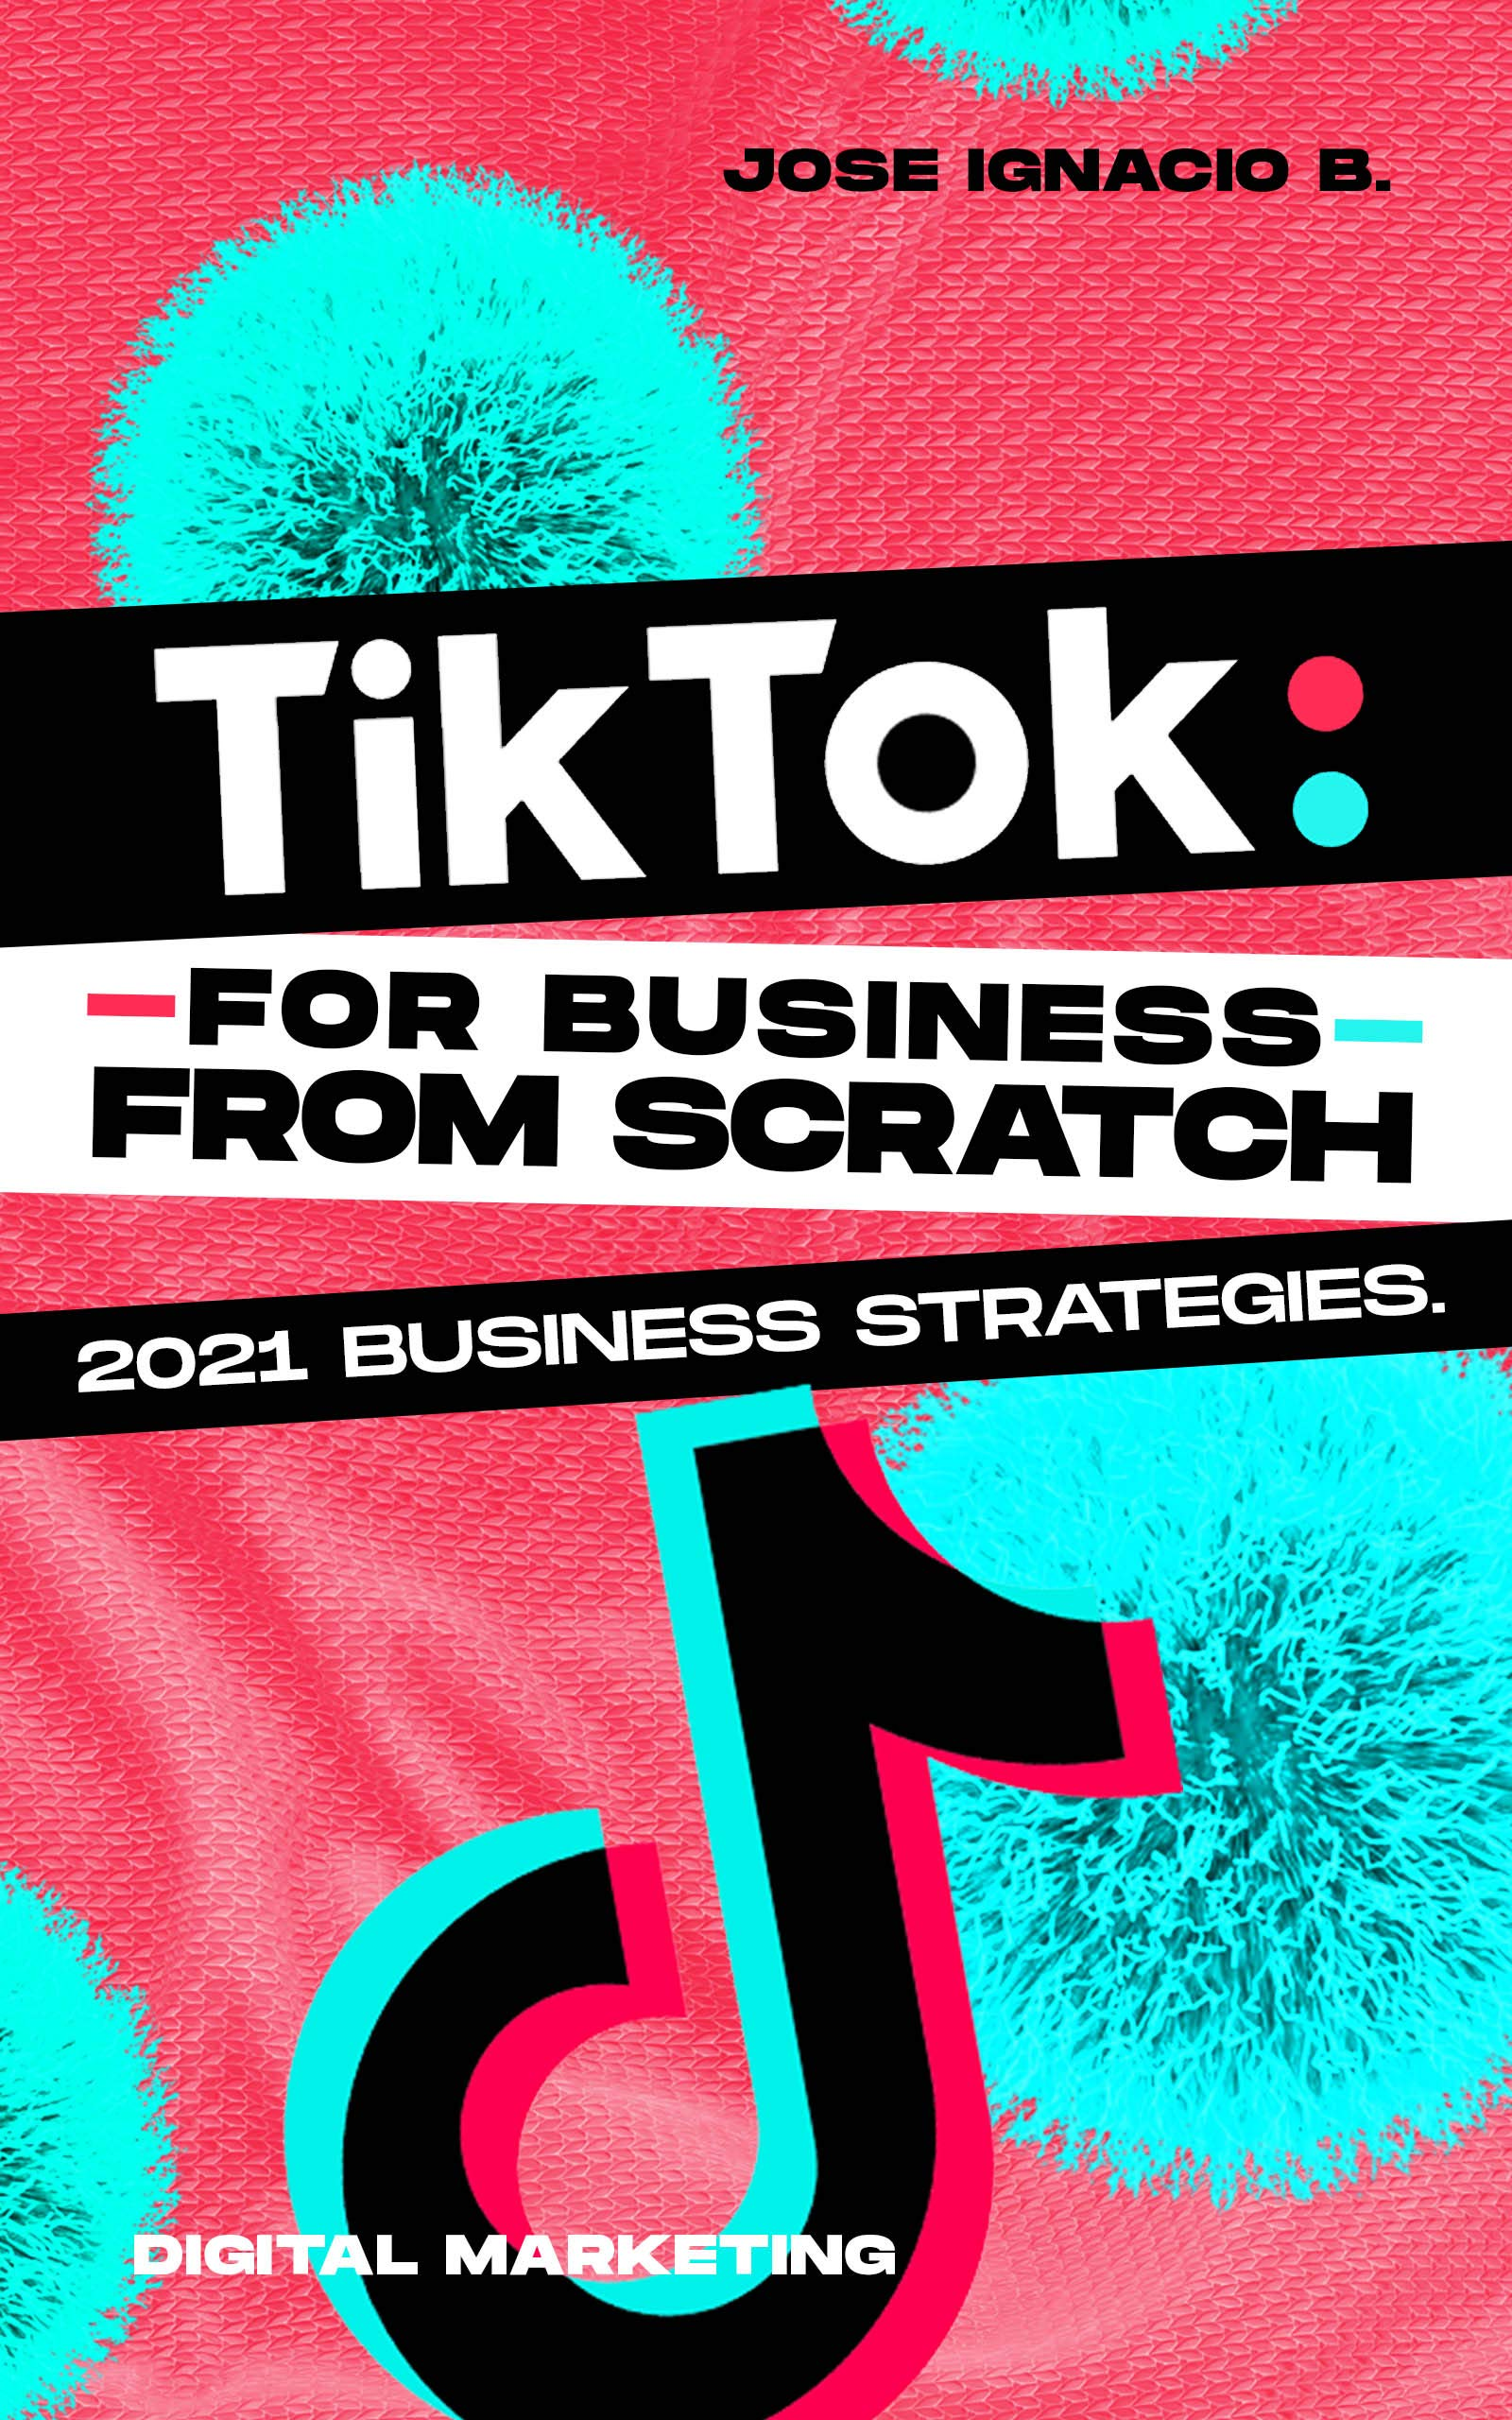 Tik Tok: from scratch! Strategies for companies 2021.: Guide with valuable information on how to make money at TIK TOK today